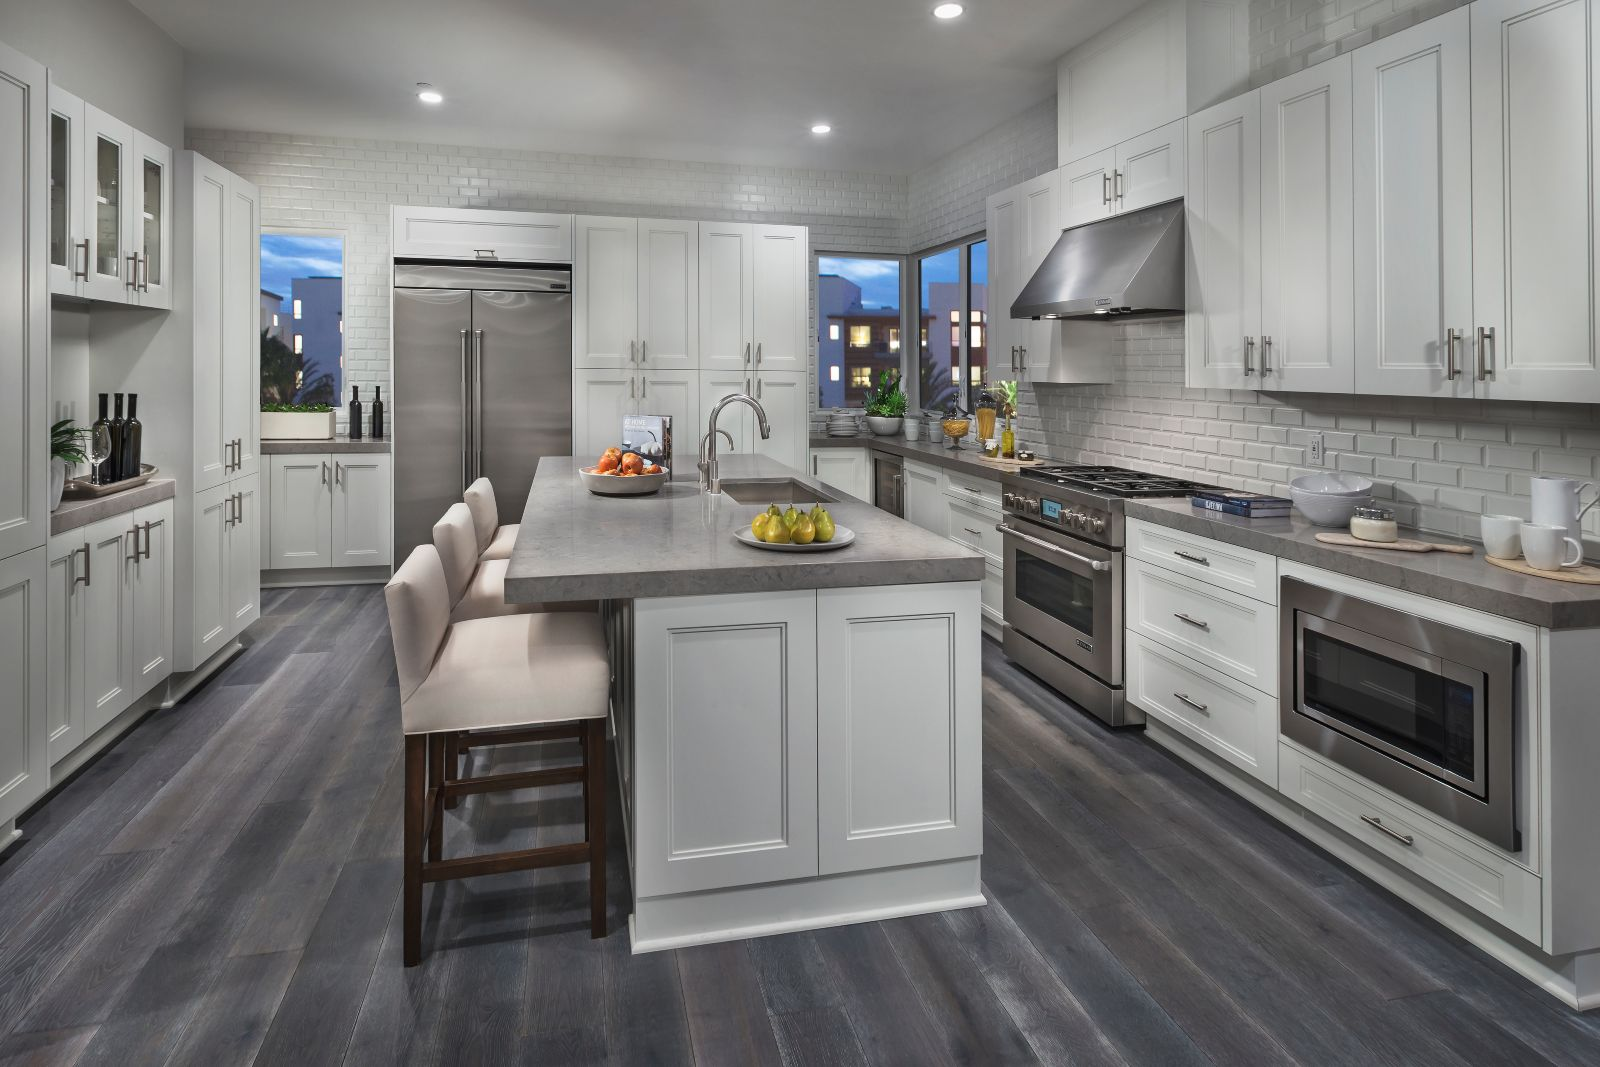 The Collection at Playa Vista Home for Sale - Kitchen